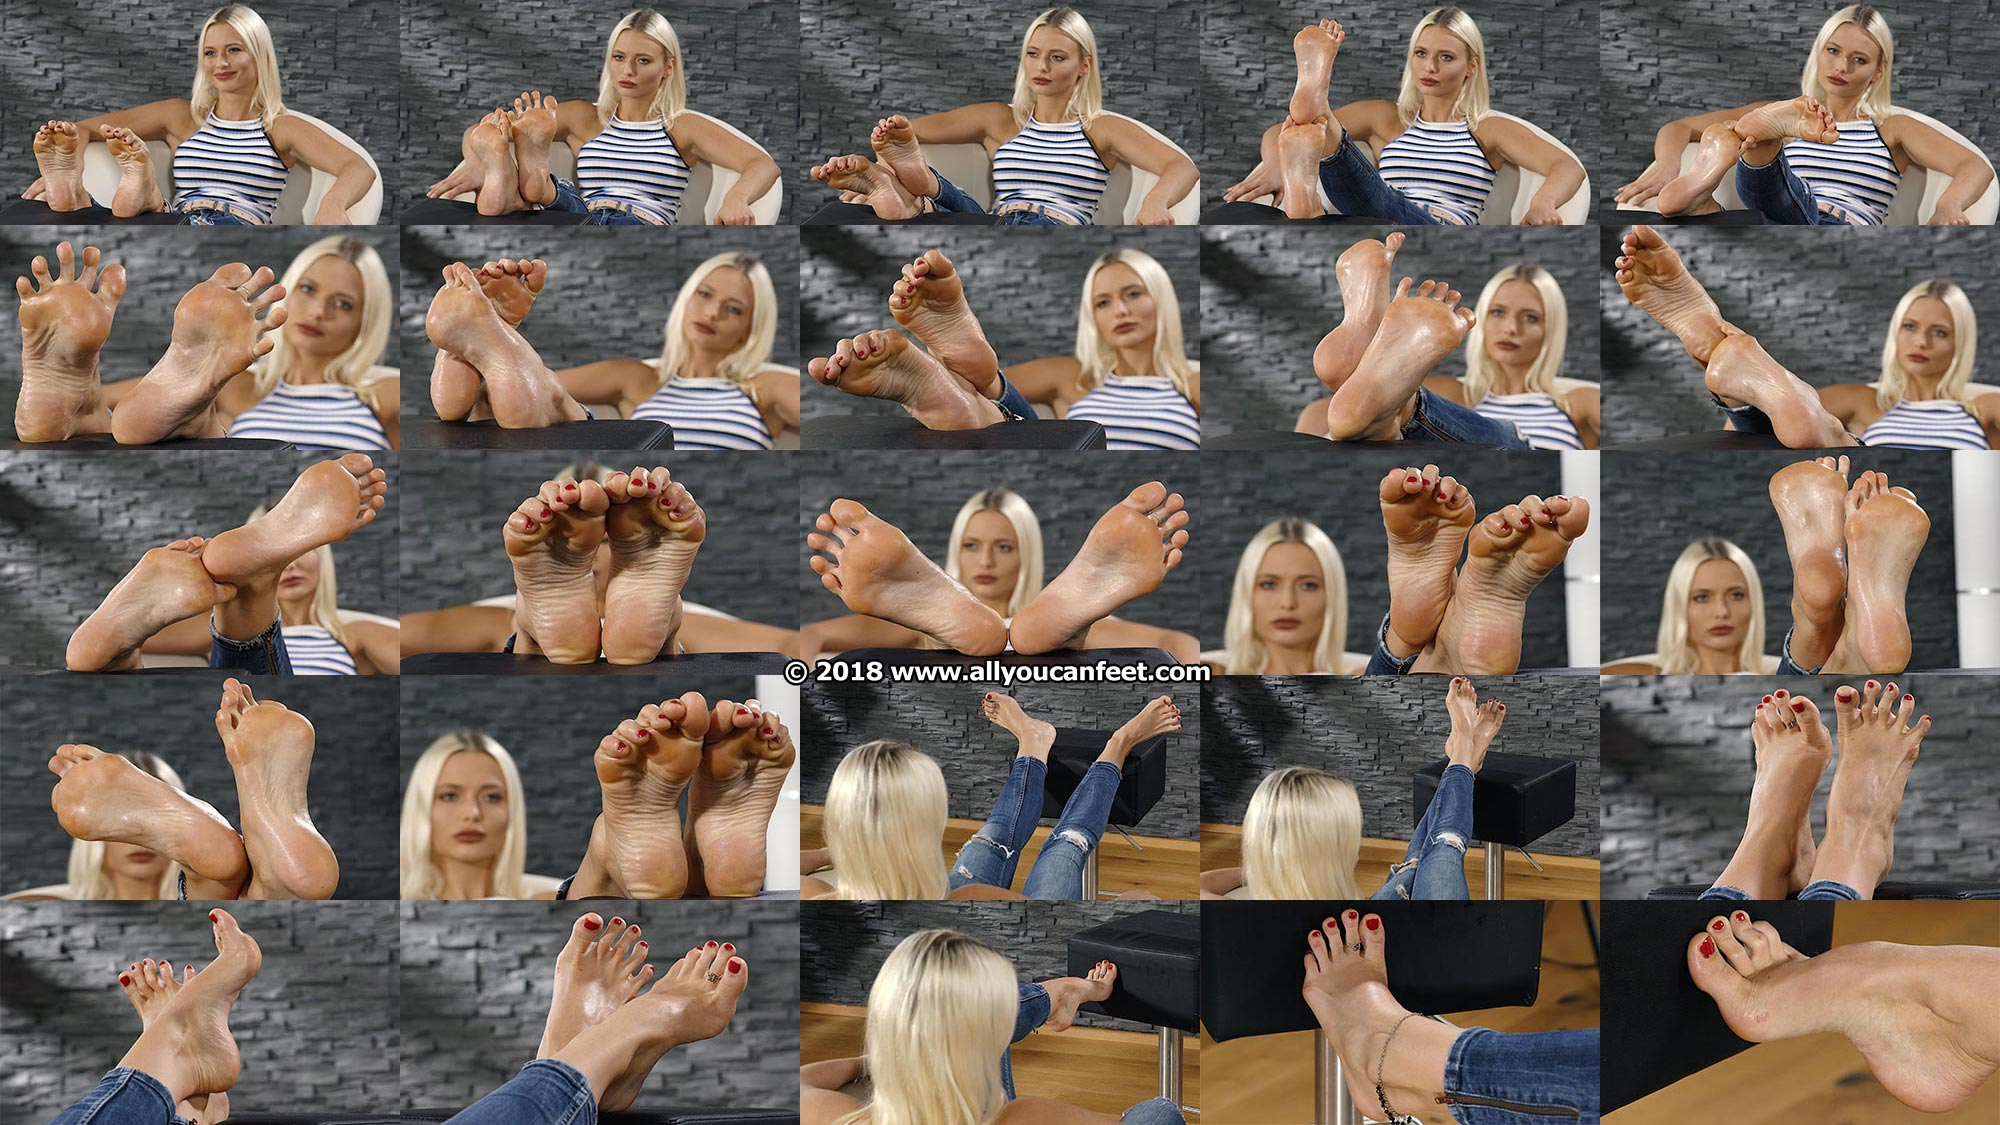 big preview pic from set 2482 showing Allyoucanfeet model Anastasia